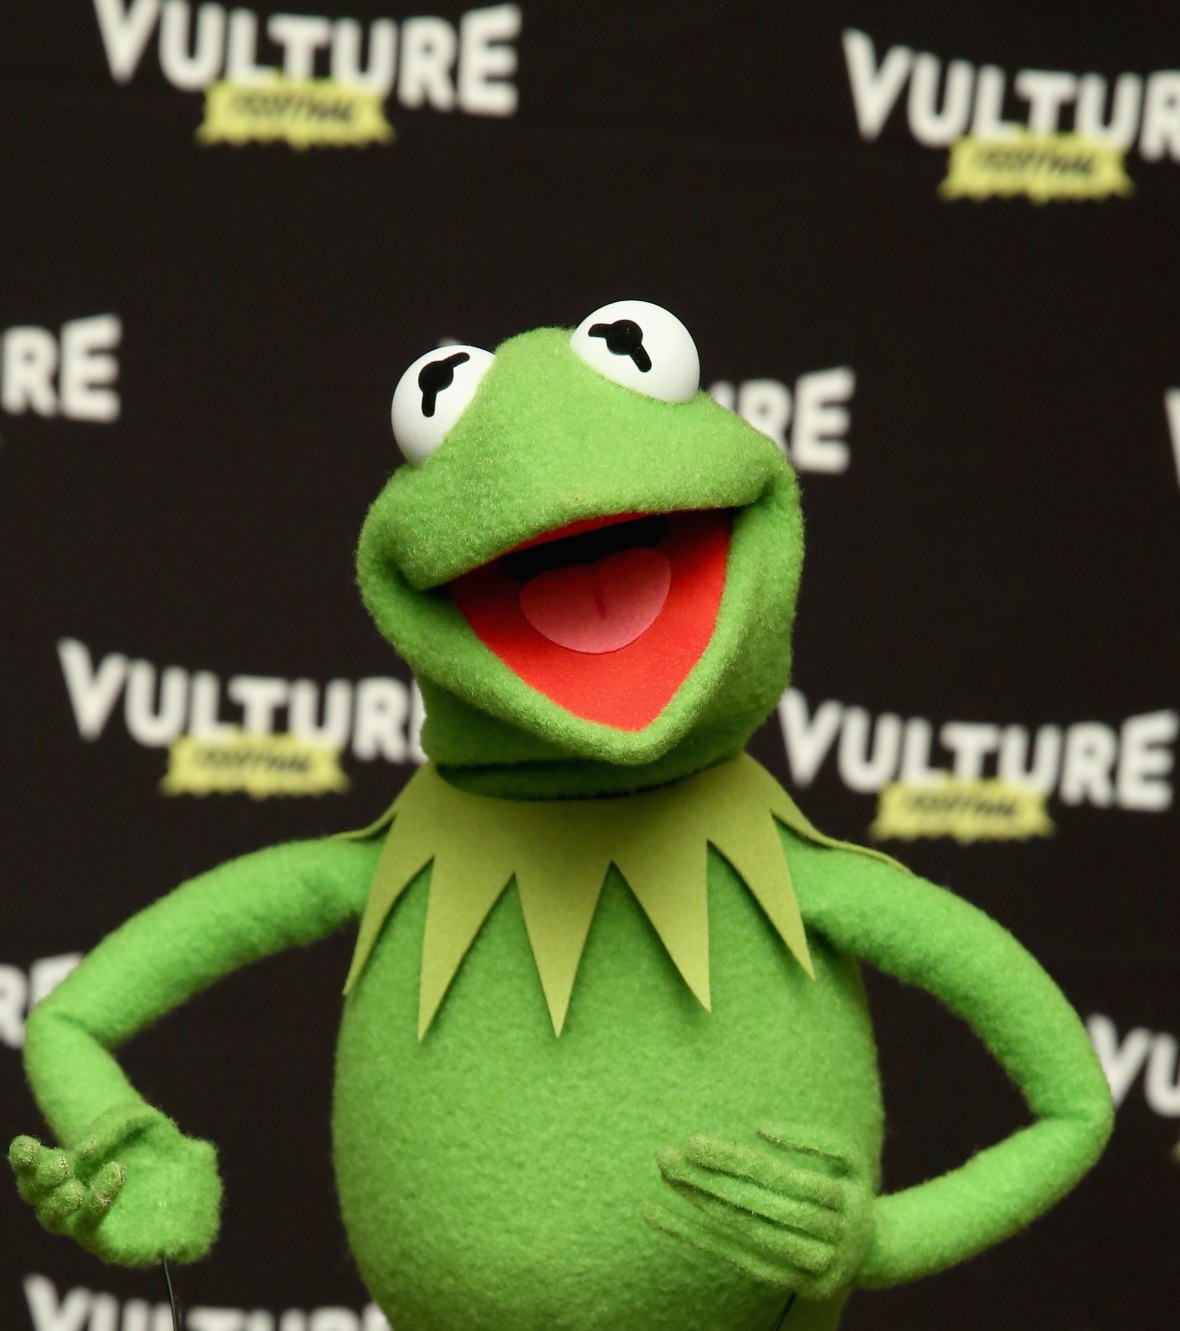 kermit the frog getty